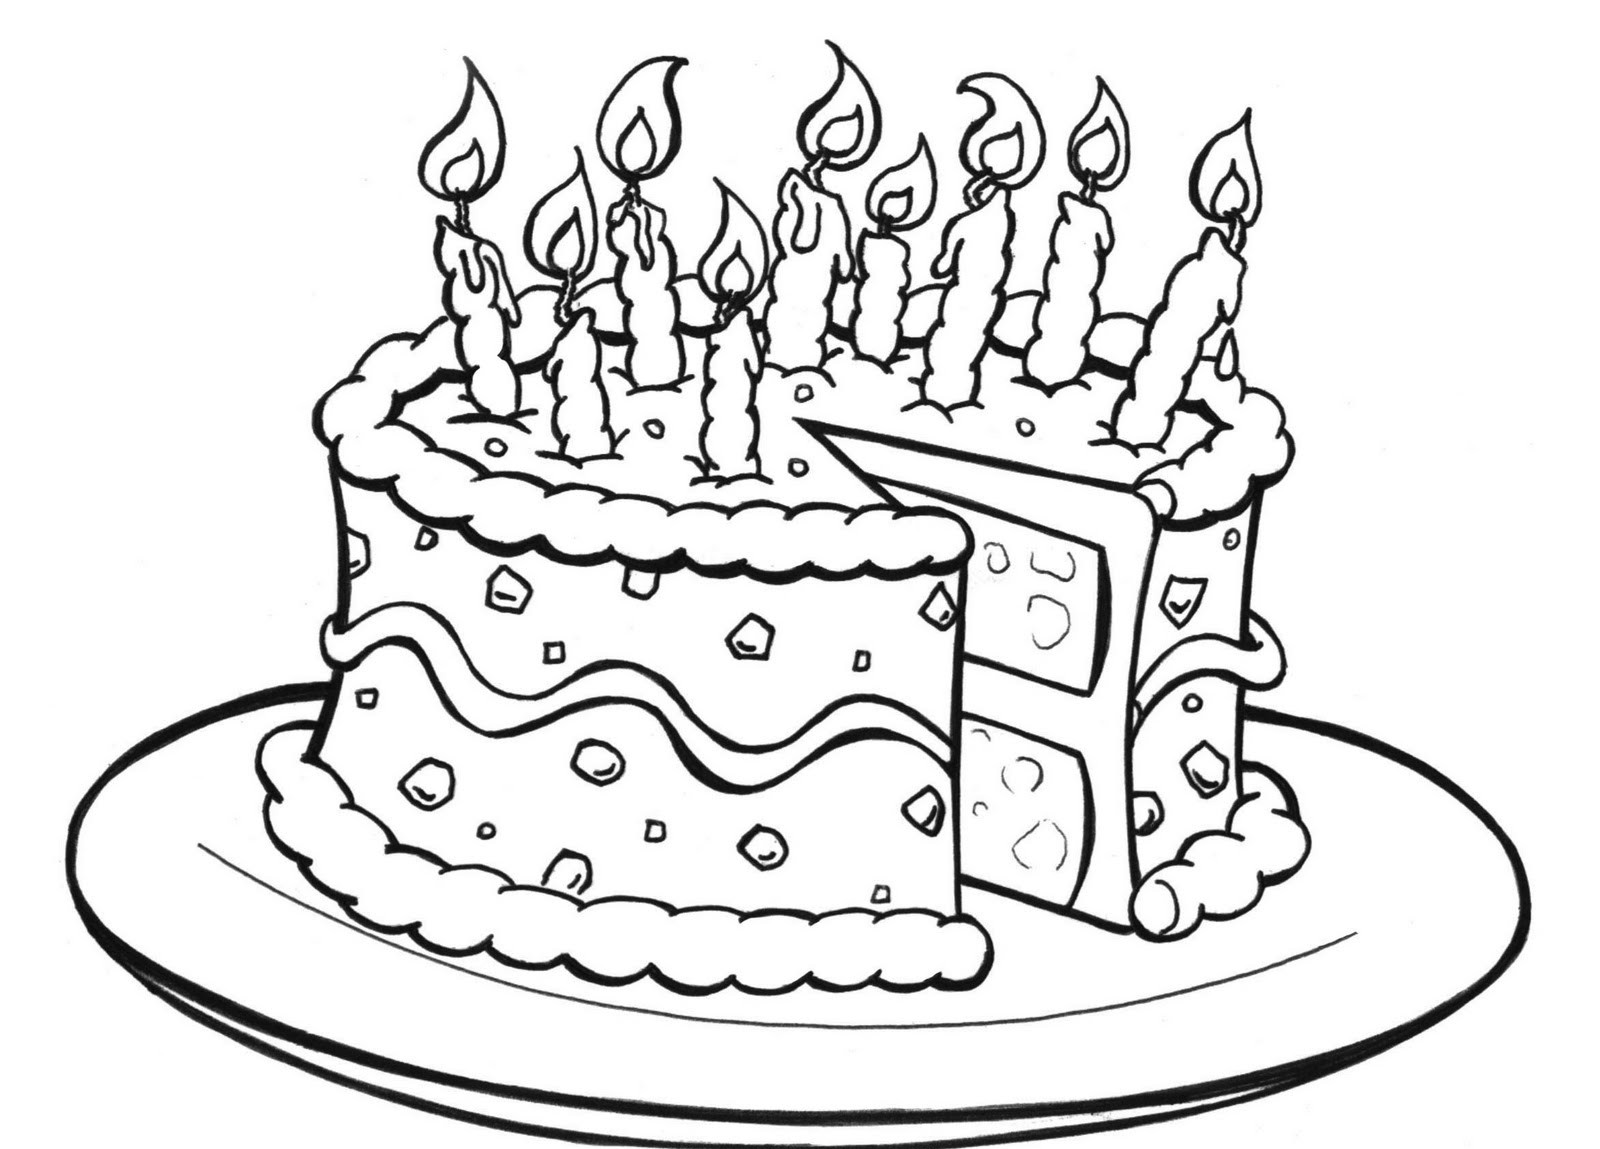 printable birthday cake images free printable birthday cake coloring pages for kids birthday printable cake images